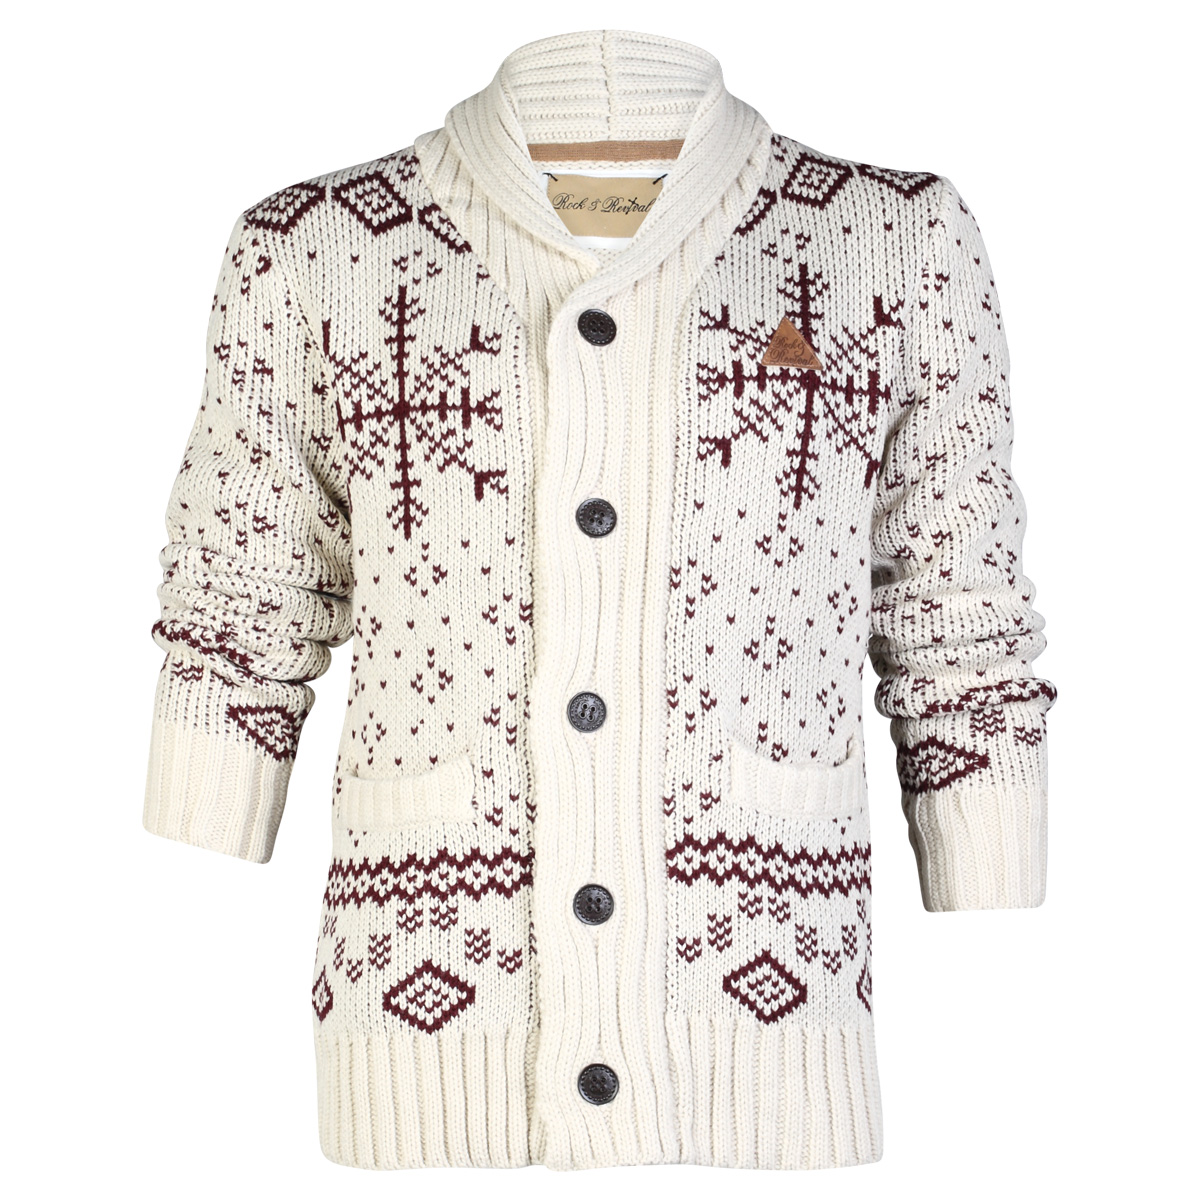 E19 ROCK & REVIVAL MENS CHUNKY KNITTED CARDIGAN WINTER LONG SLEEVE ...